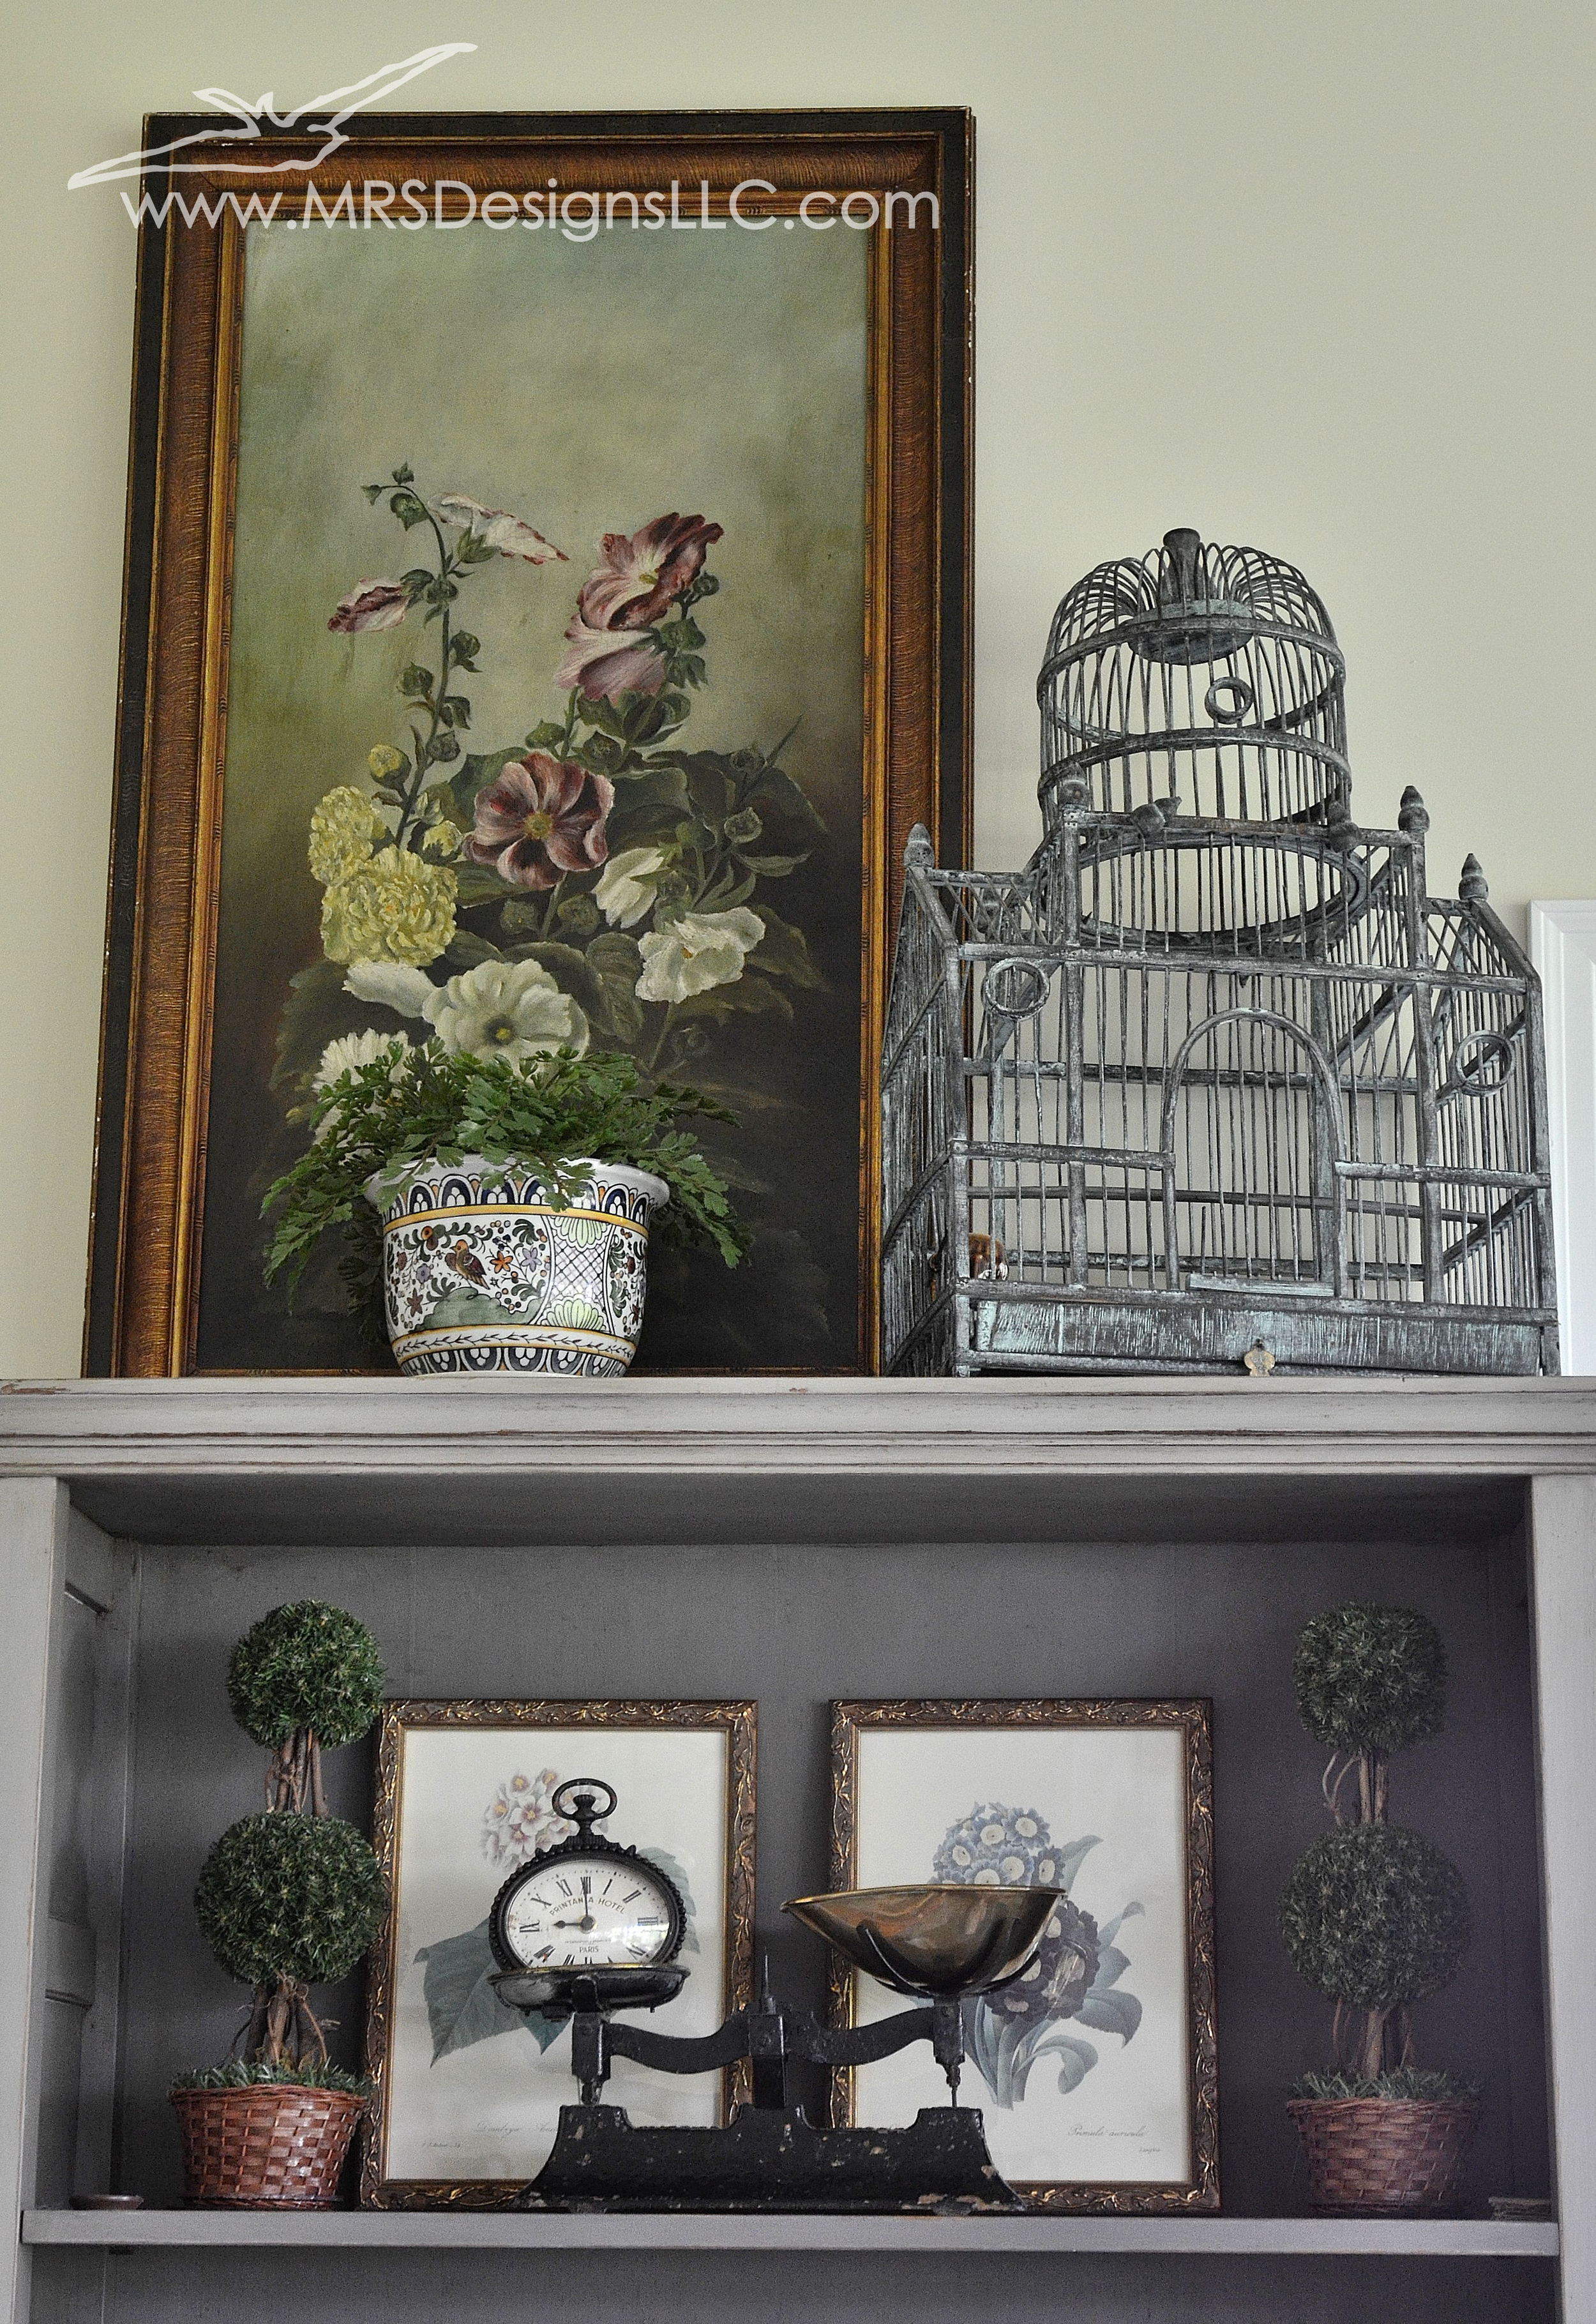 MRS Designs Blog - Using Vintage Scales to Decorate Your Home